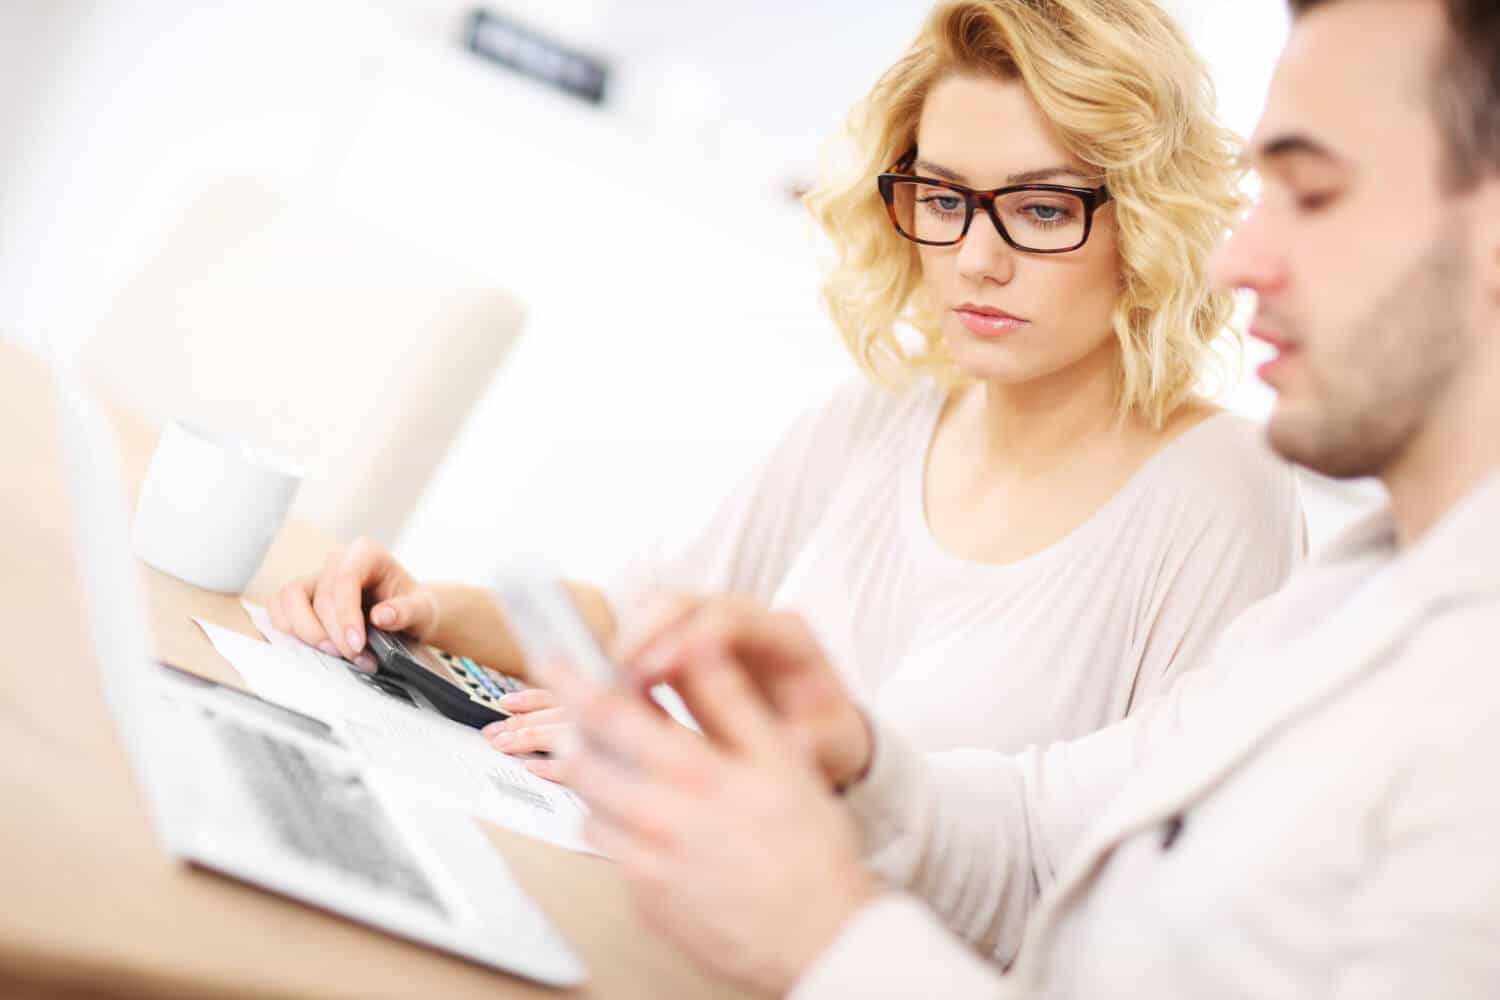 When Handling Money, Women Have Better Money Management Skills - Debt.com